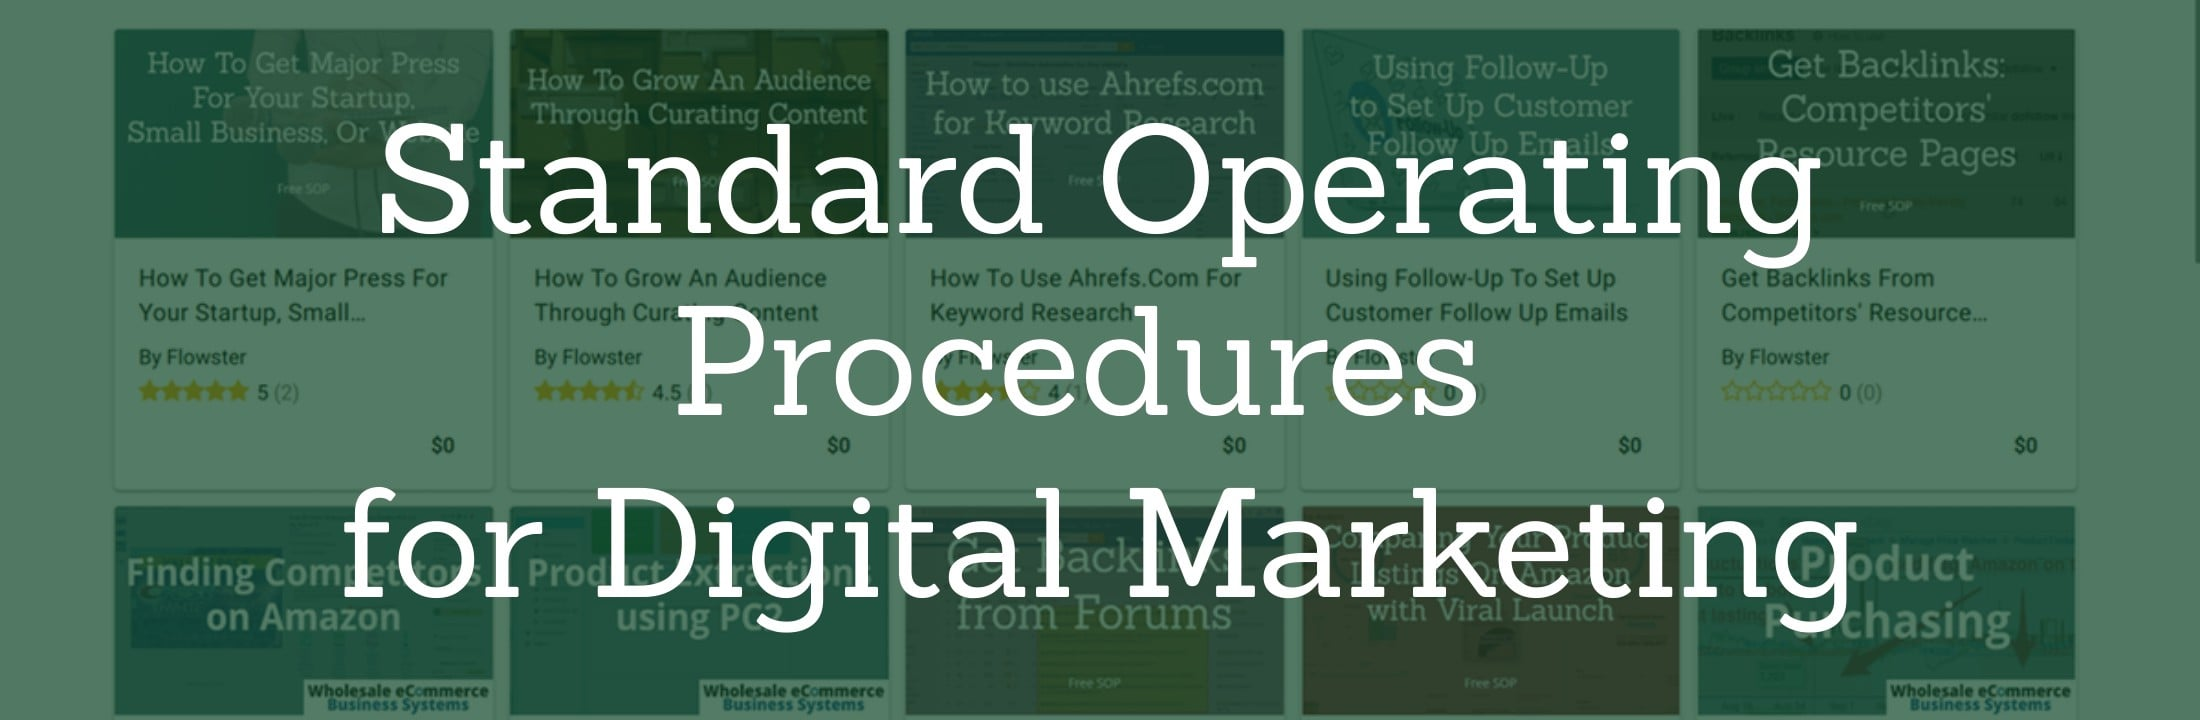 Standard Operating Procedures for Digital Marketing